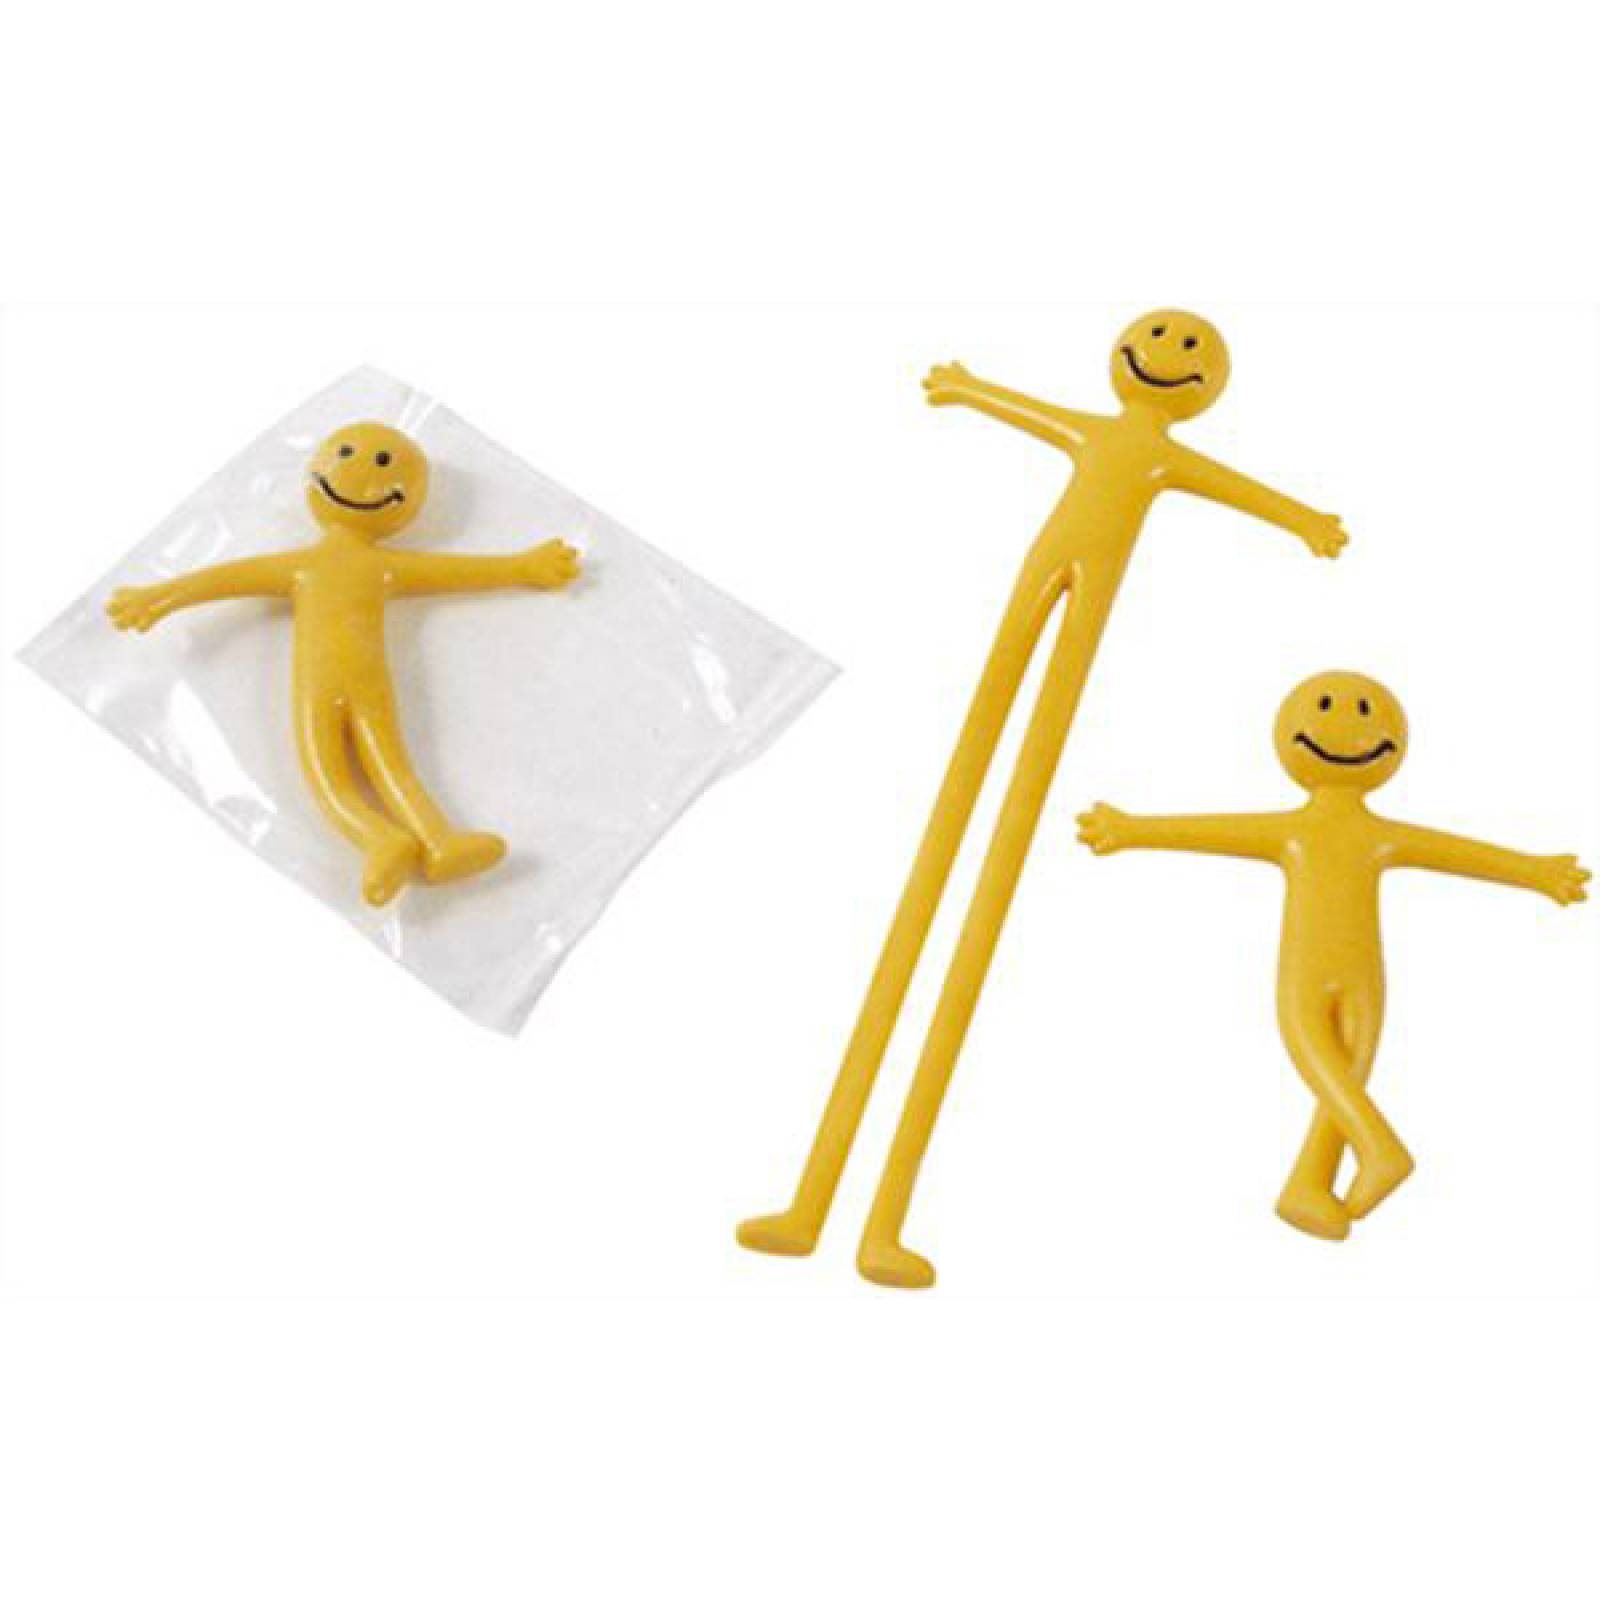 Toy Smiley Stretchy Man thumbnails